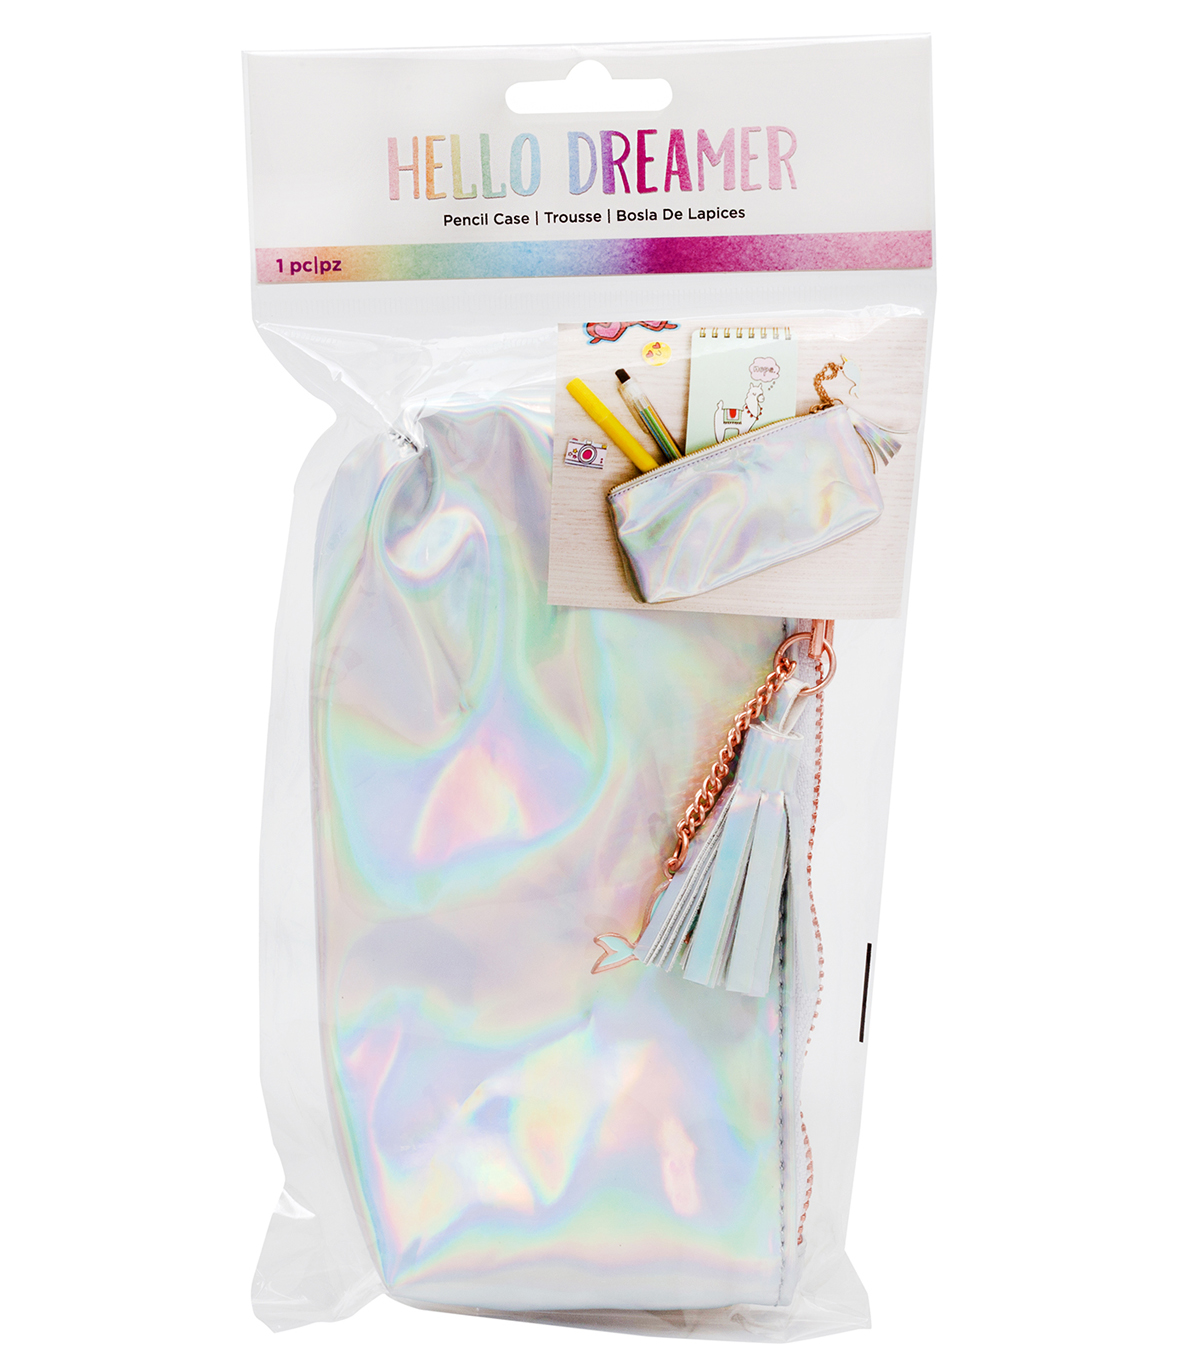 American Crafts Hello Dreamer Pencil Case